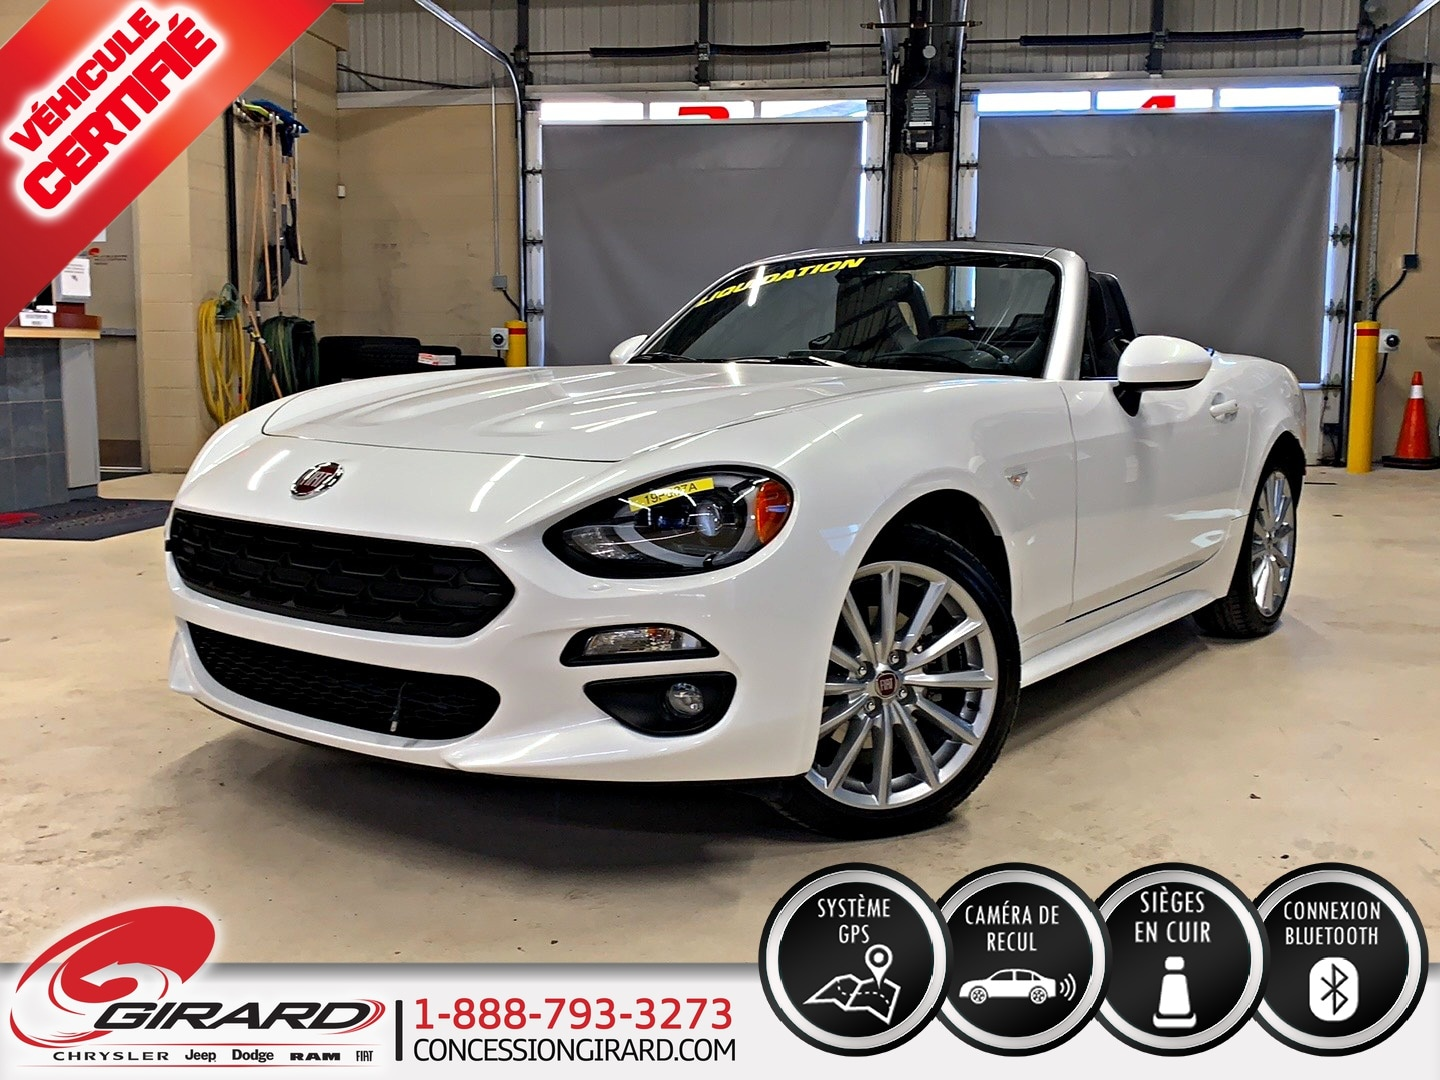 Fiat 124 Spider LUSSO*PLAN OR 5 ANS/100 000 KM*CUIR*GPS* 2017